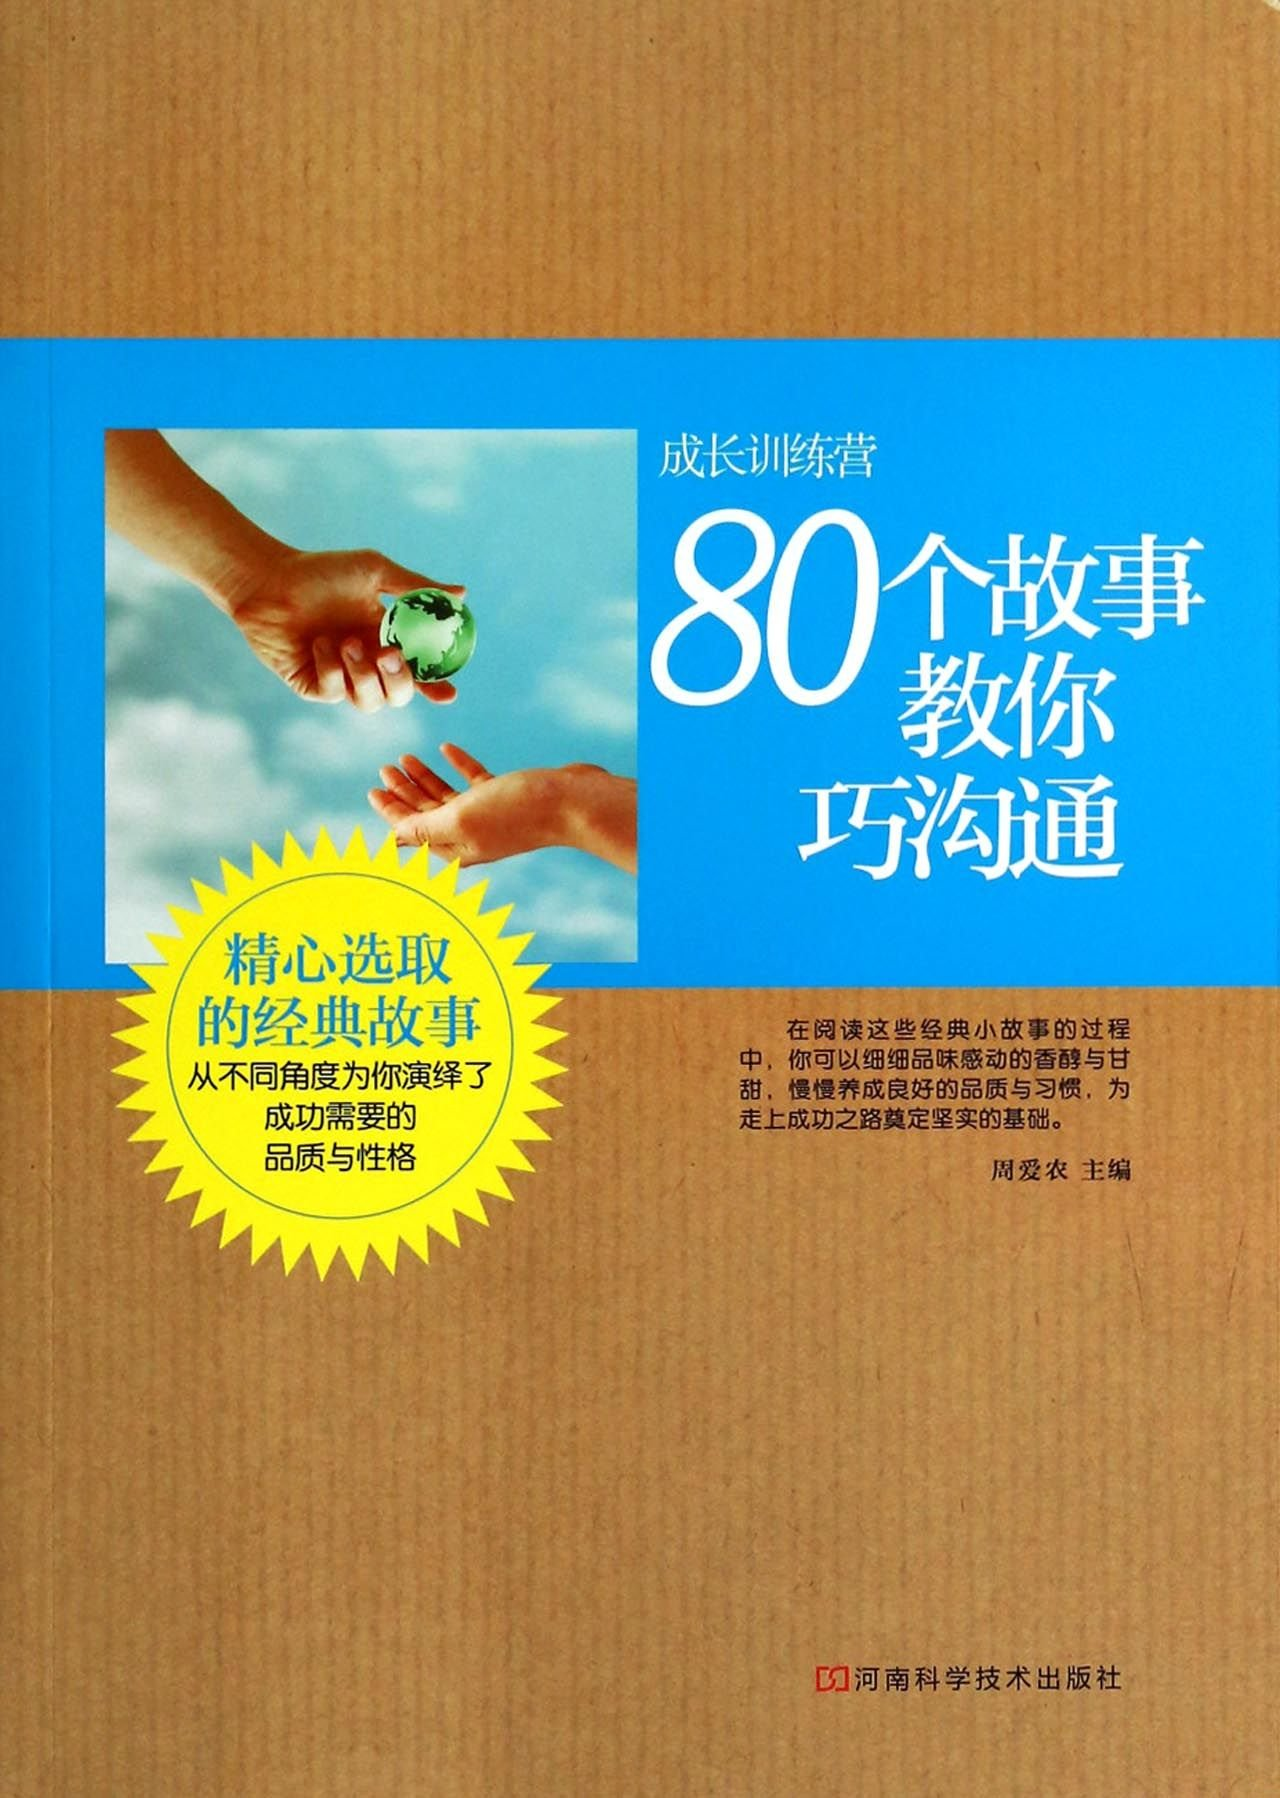 Growth Training Camp: 80 stories to teach you clever communication(Chinese Edition) PDF